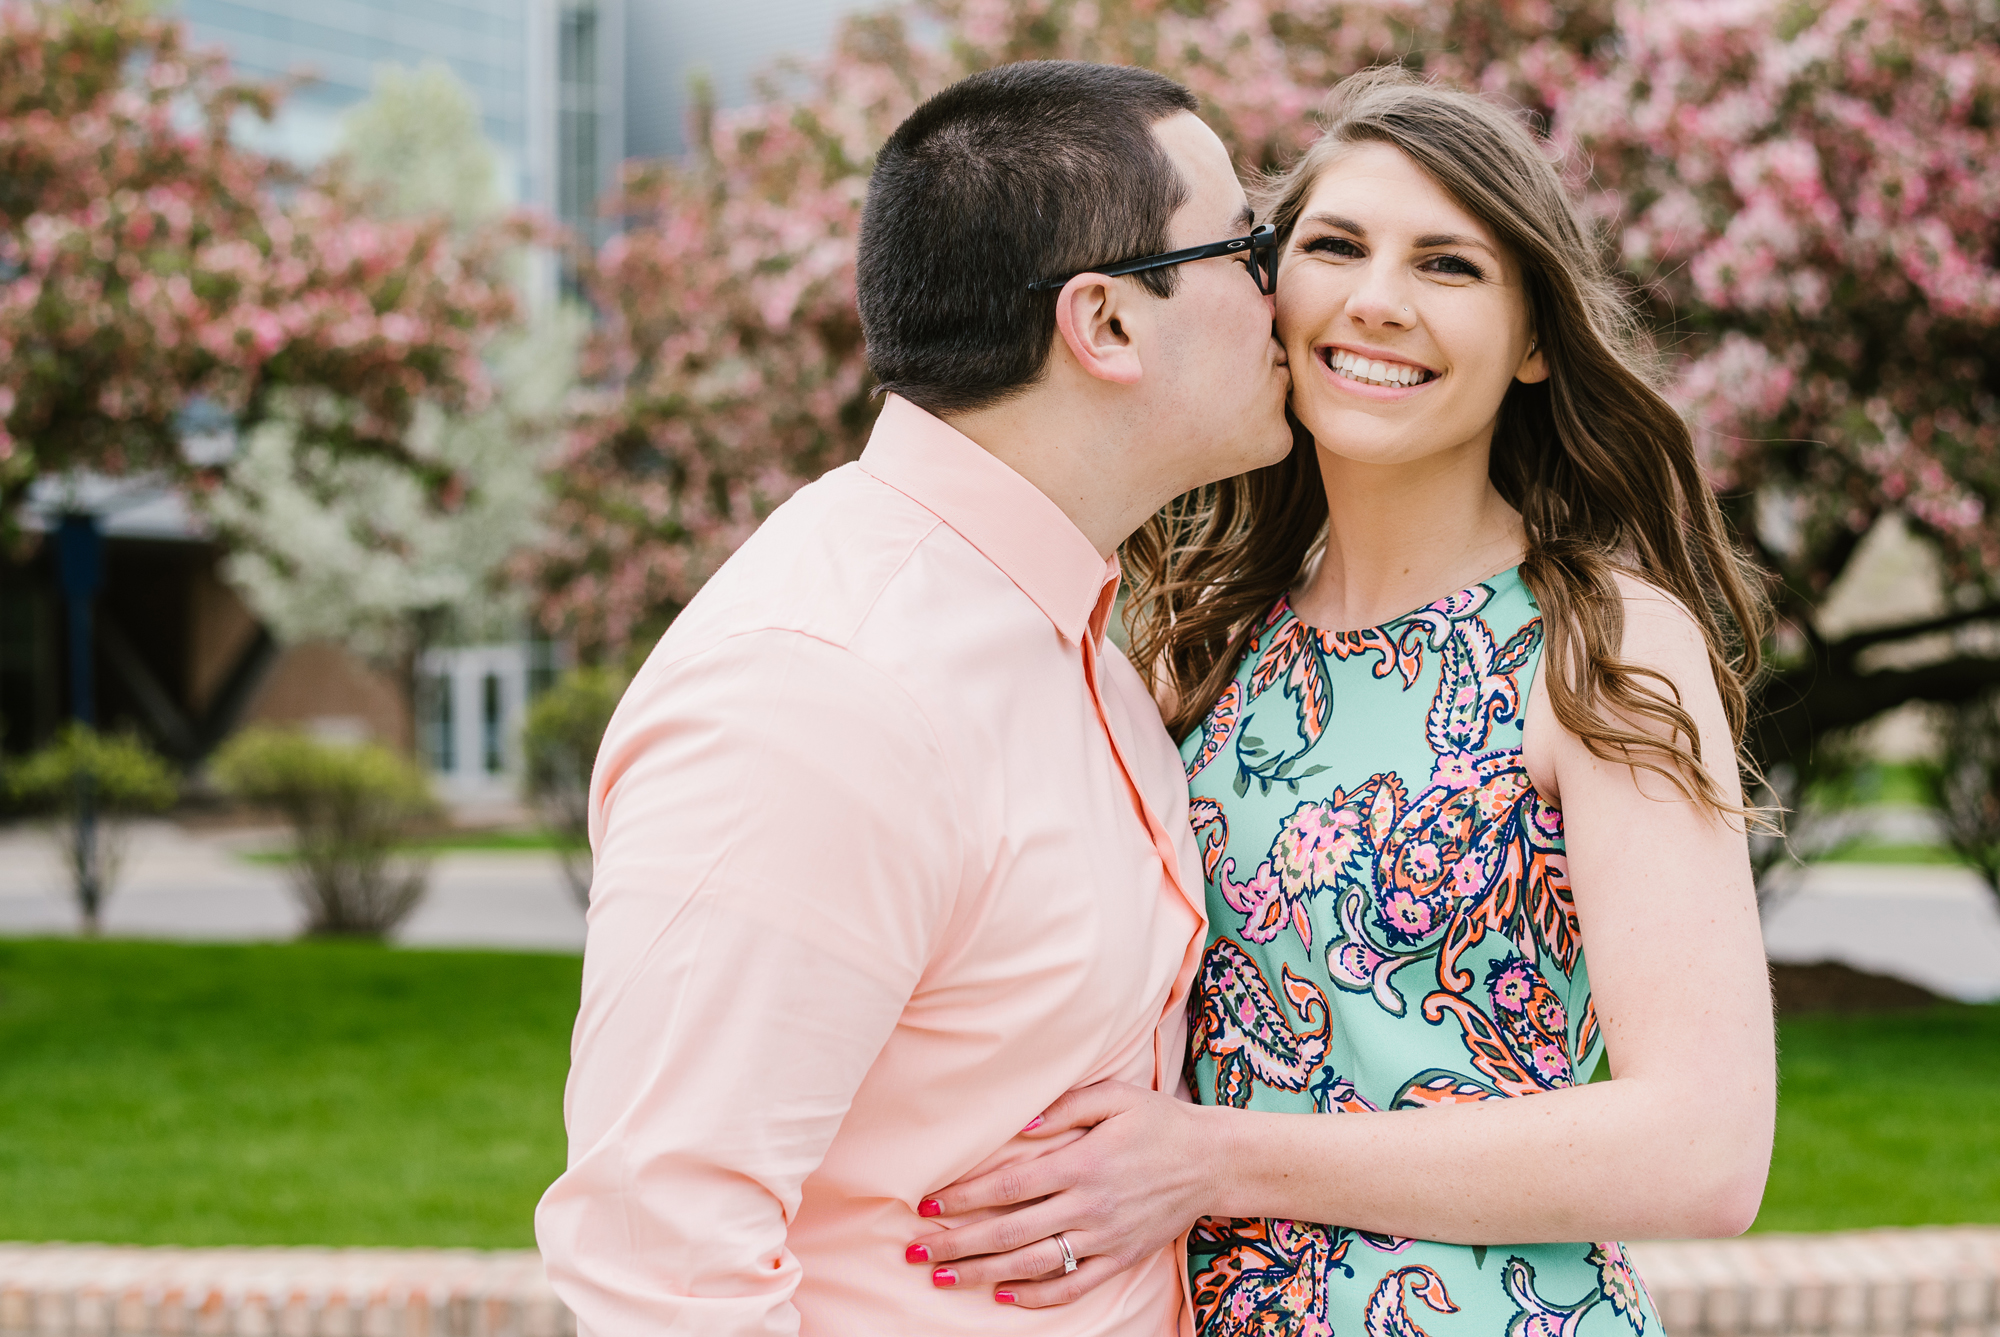 grand-rapids-downtown-spring-engagement-session (20).jpg